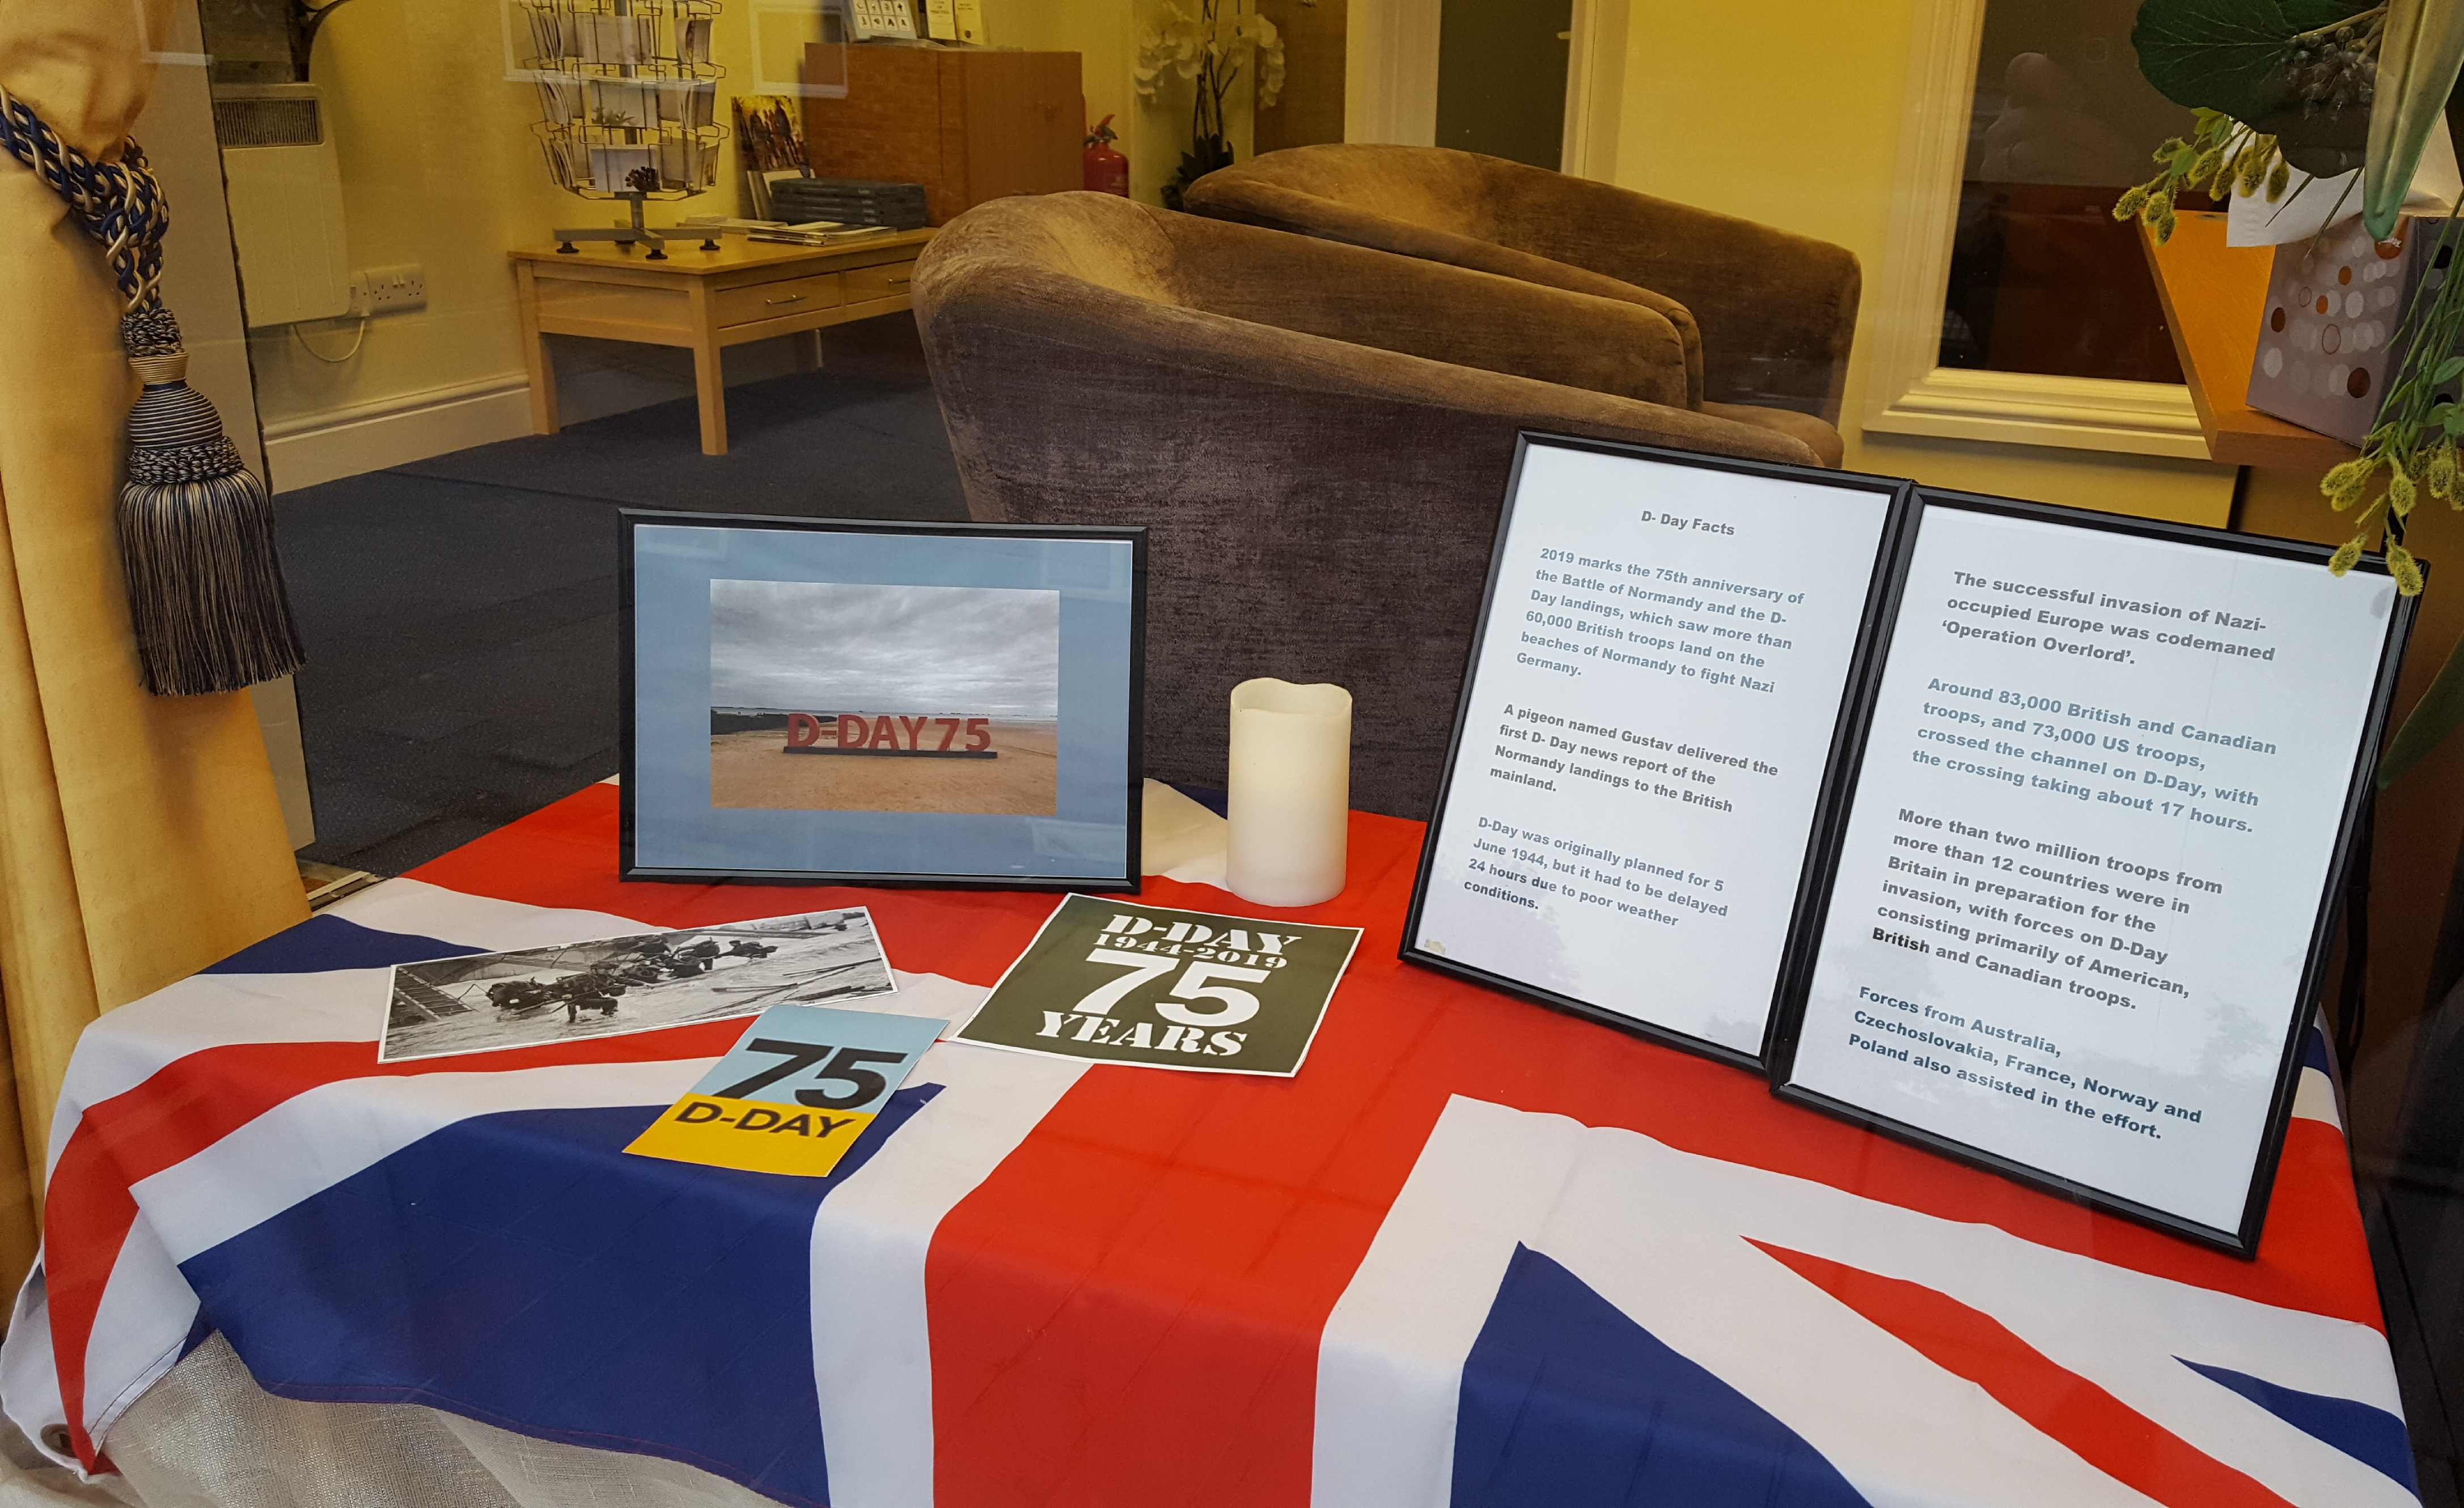 D-Day 75 Commemorated at Cobham